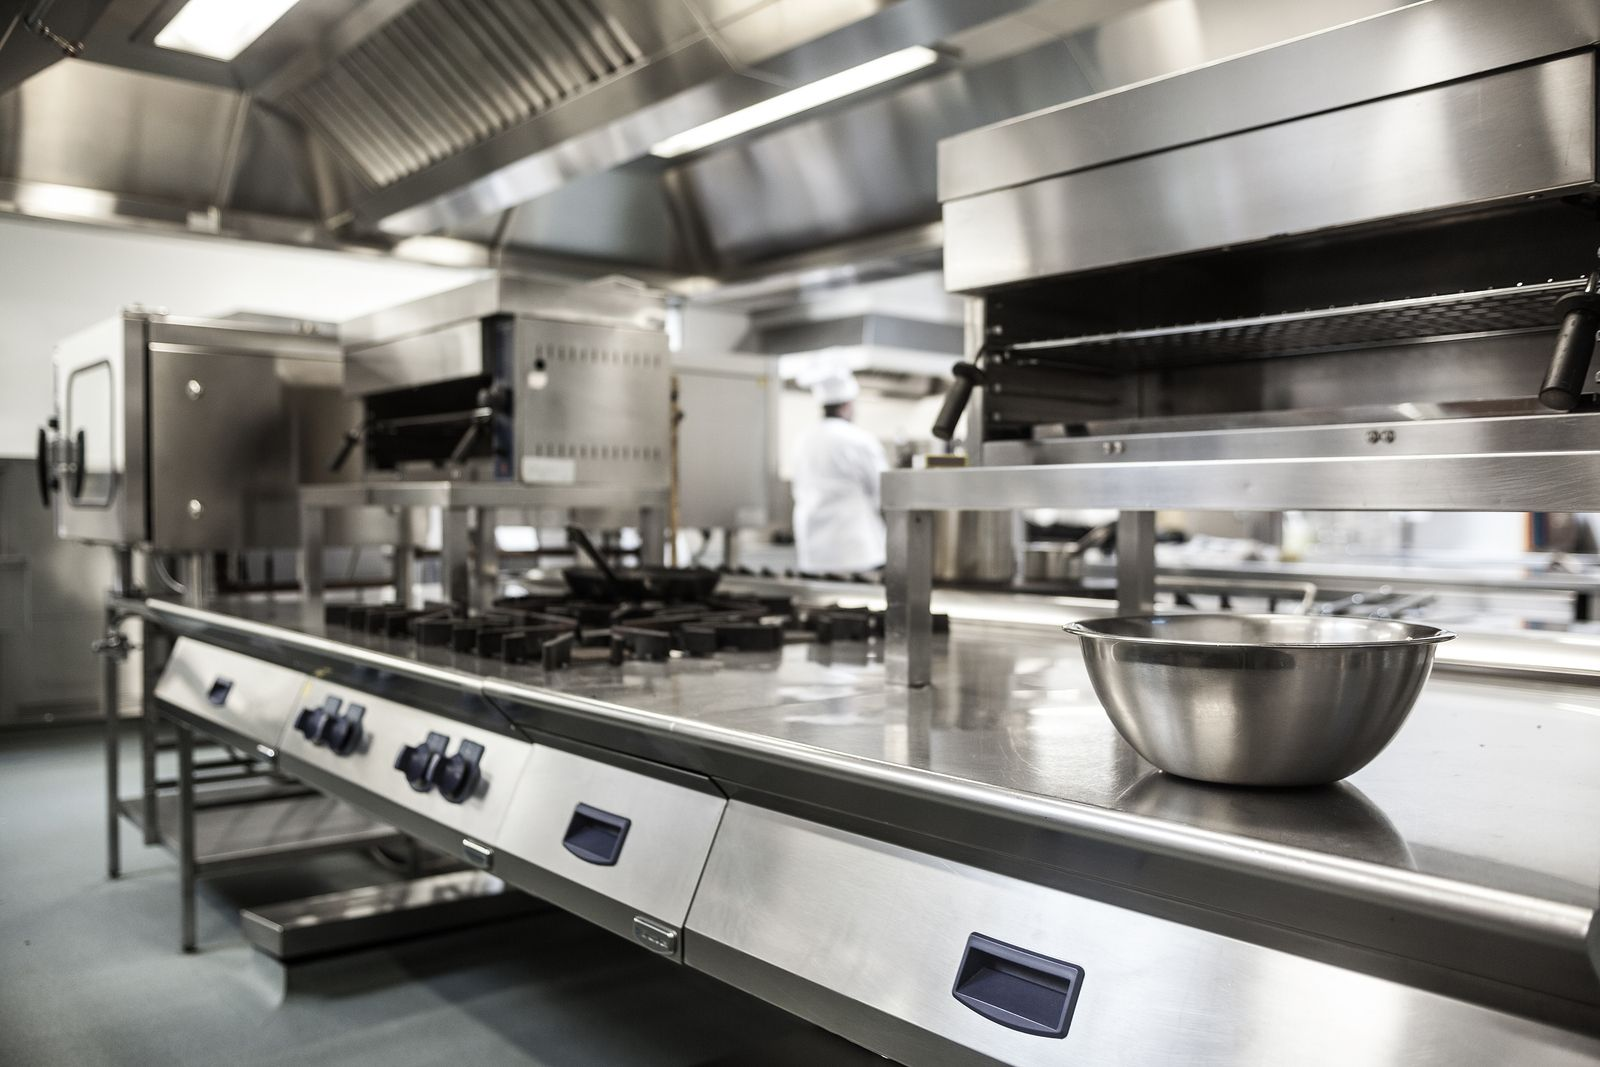 Related image pinterest commercial kitchen kitchen and